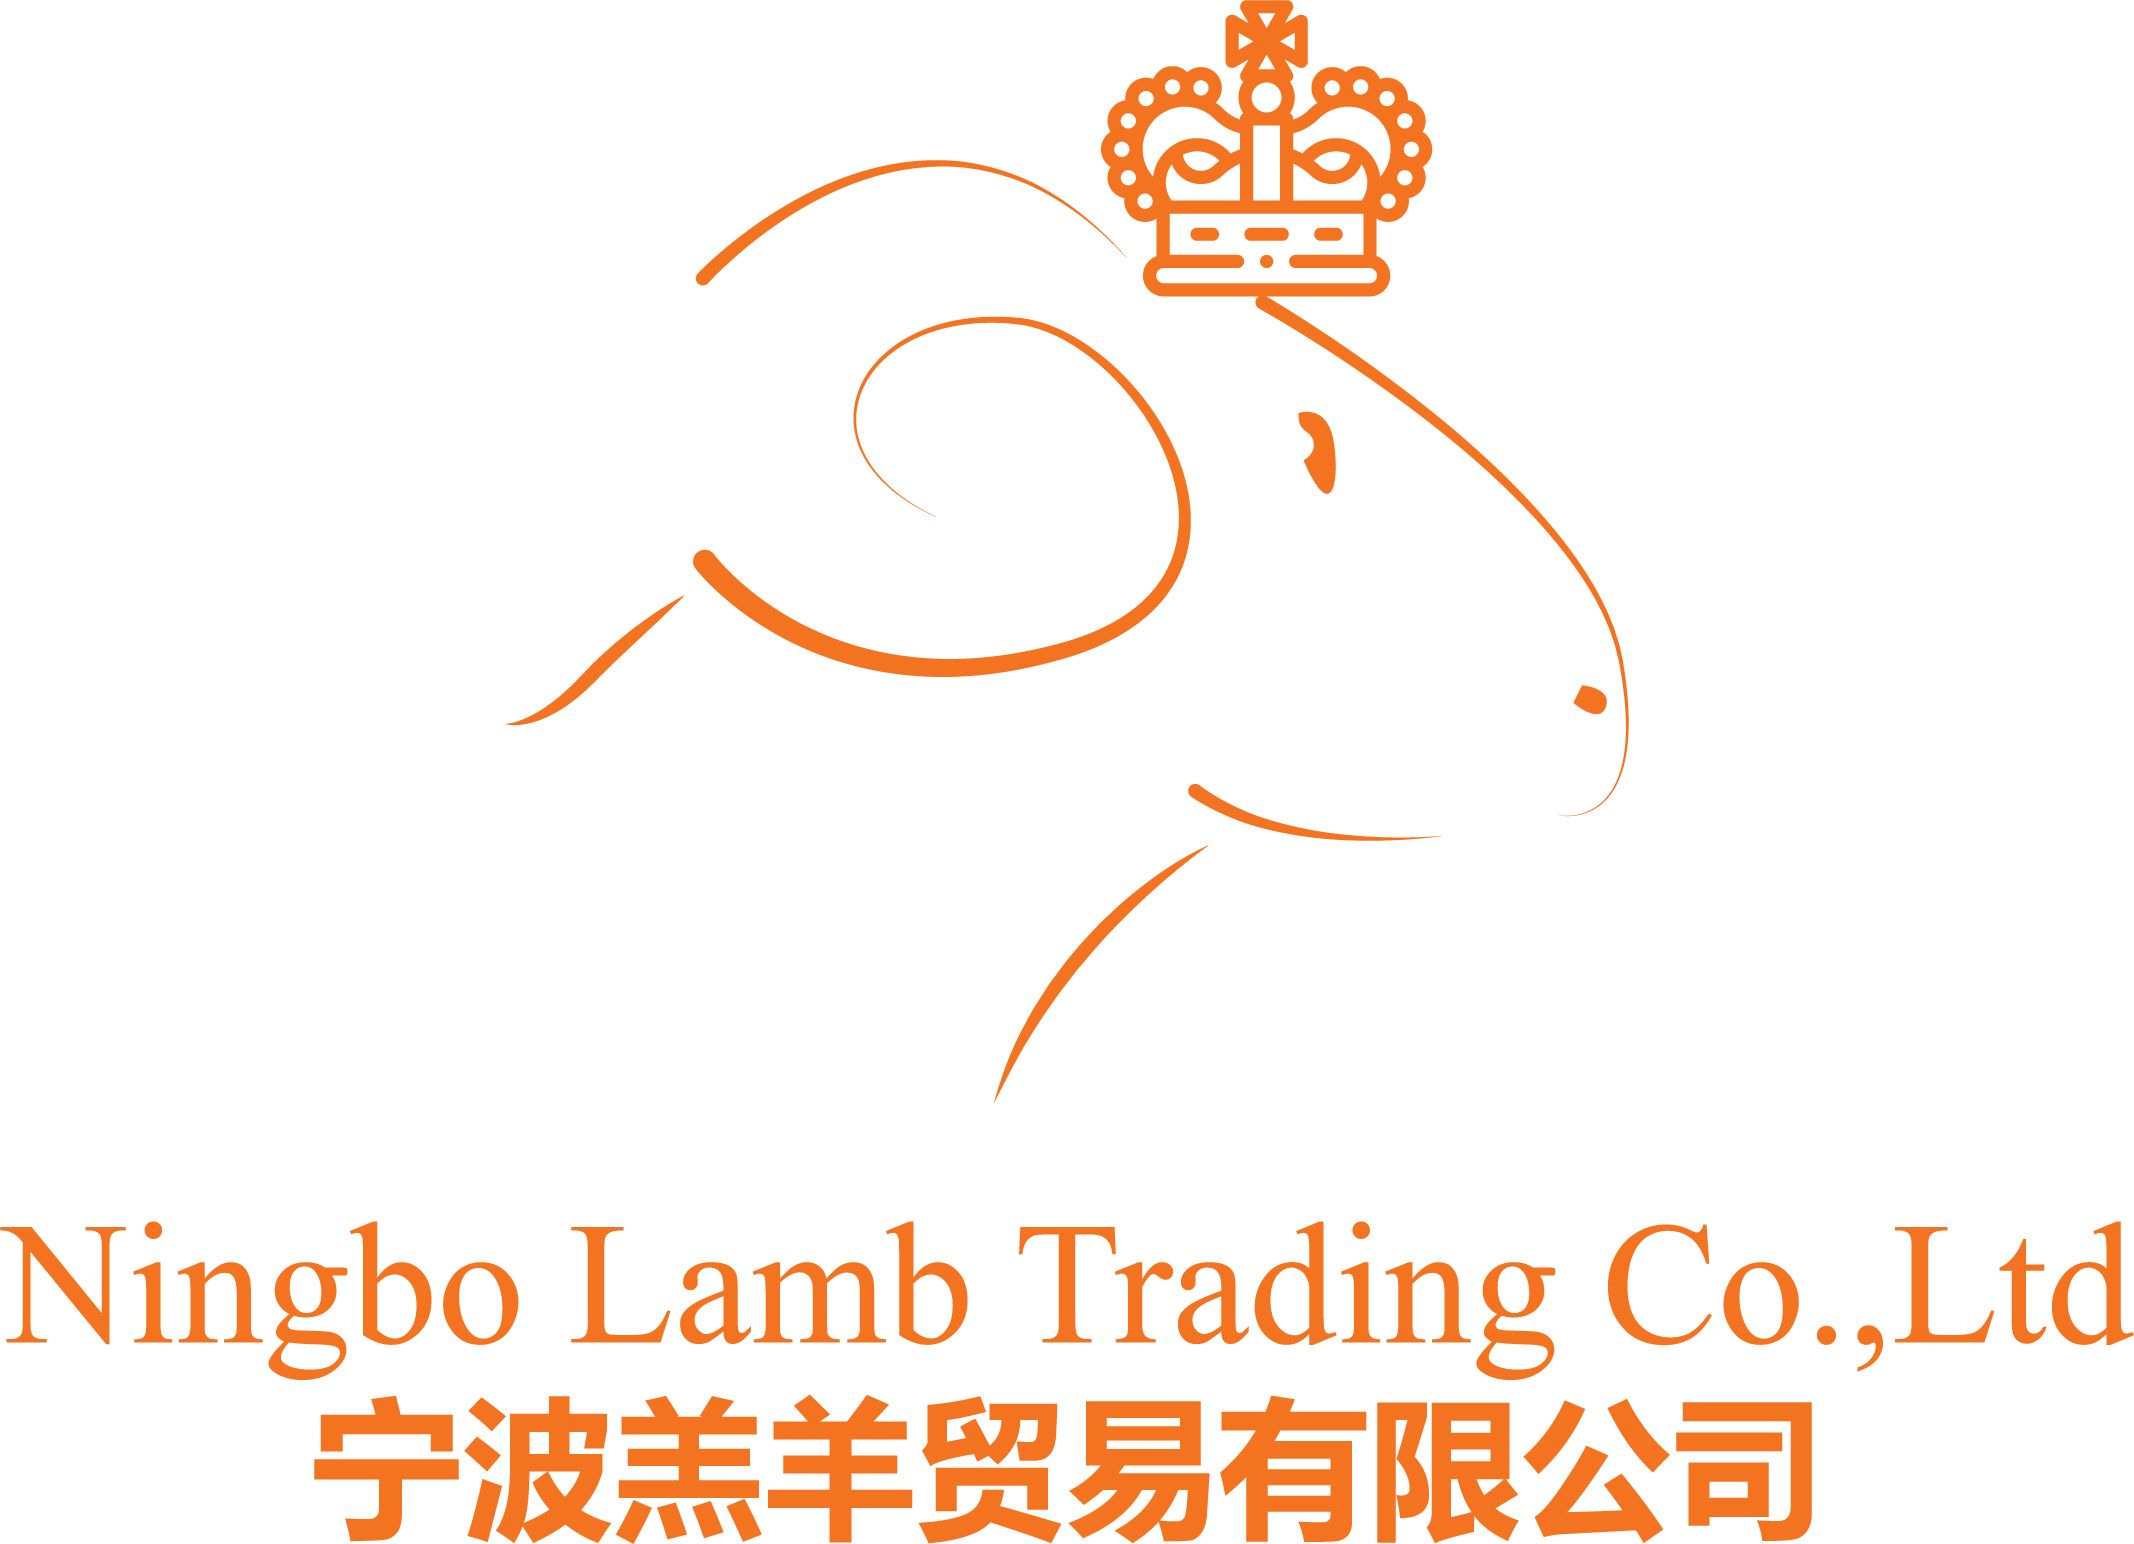 Ningbo Lamb Trading Co.,Ltd